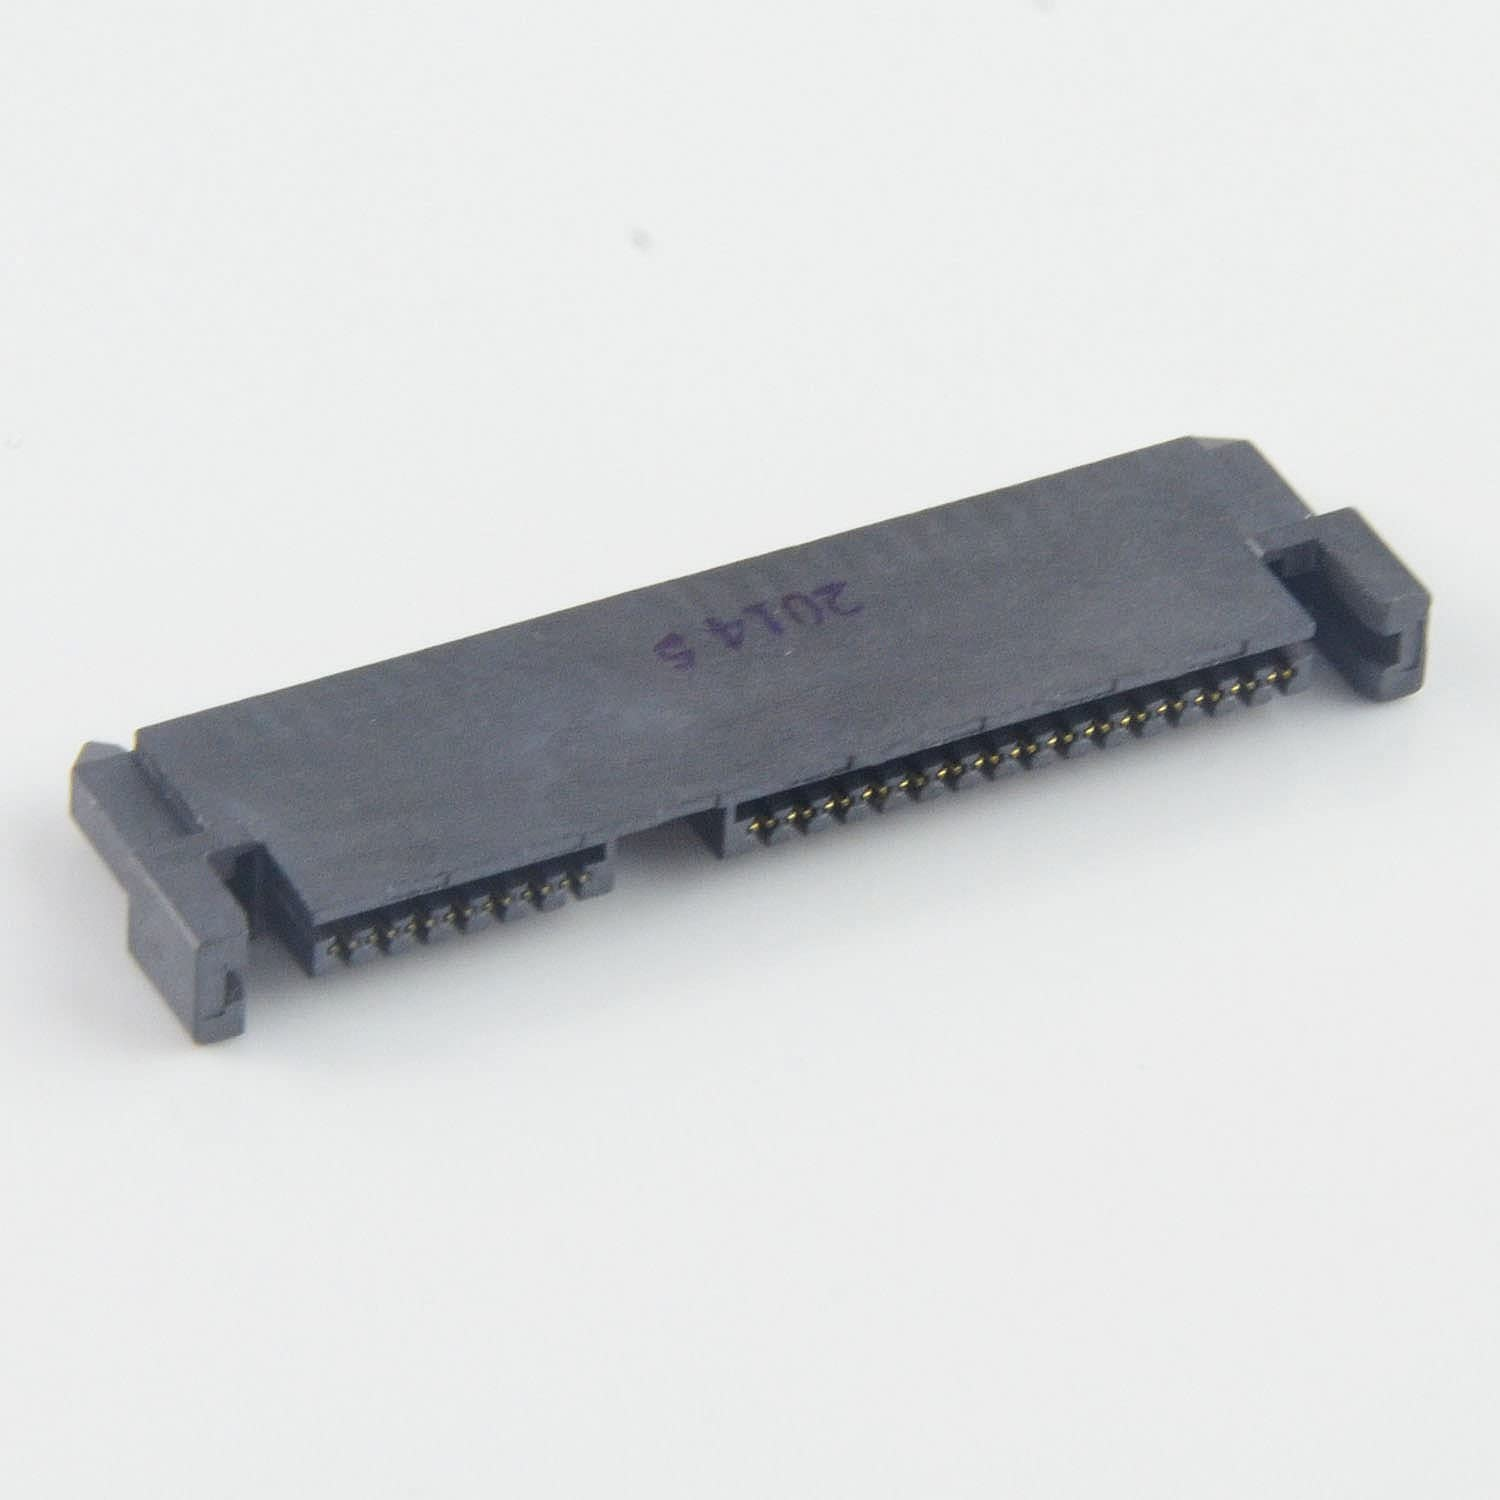 Eathtek Replacement 2.5 SATA Hard Drive Connector Adapter for HP DV2000 series